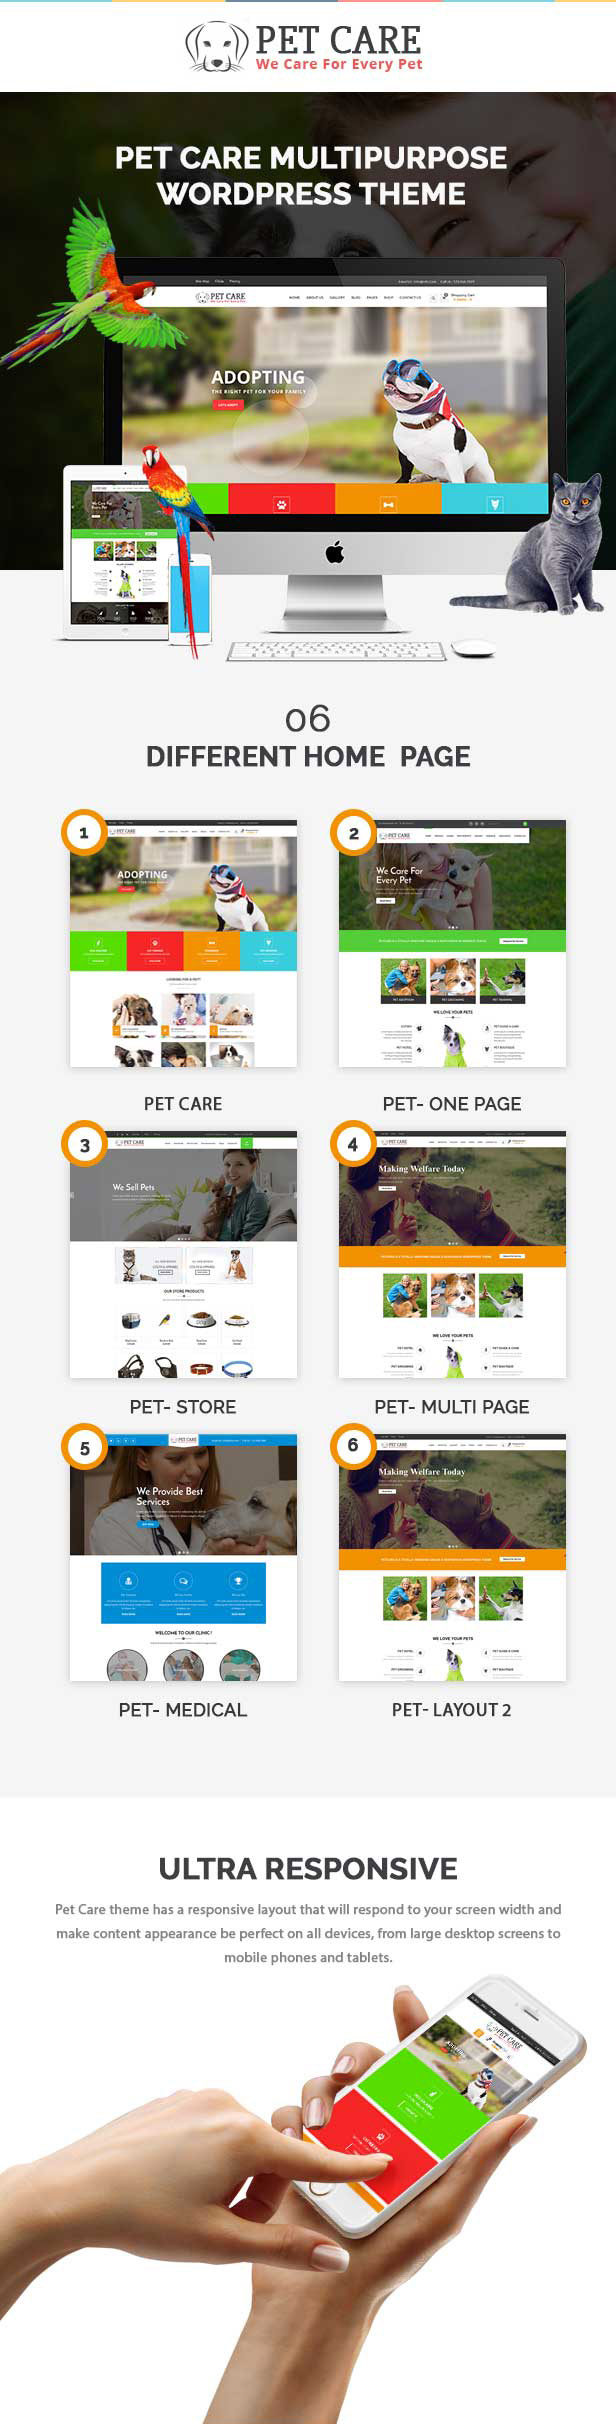 petcare features